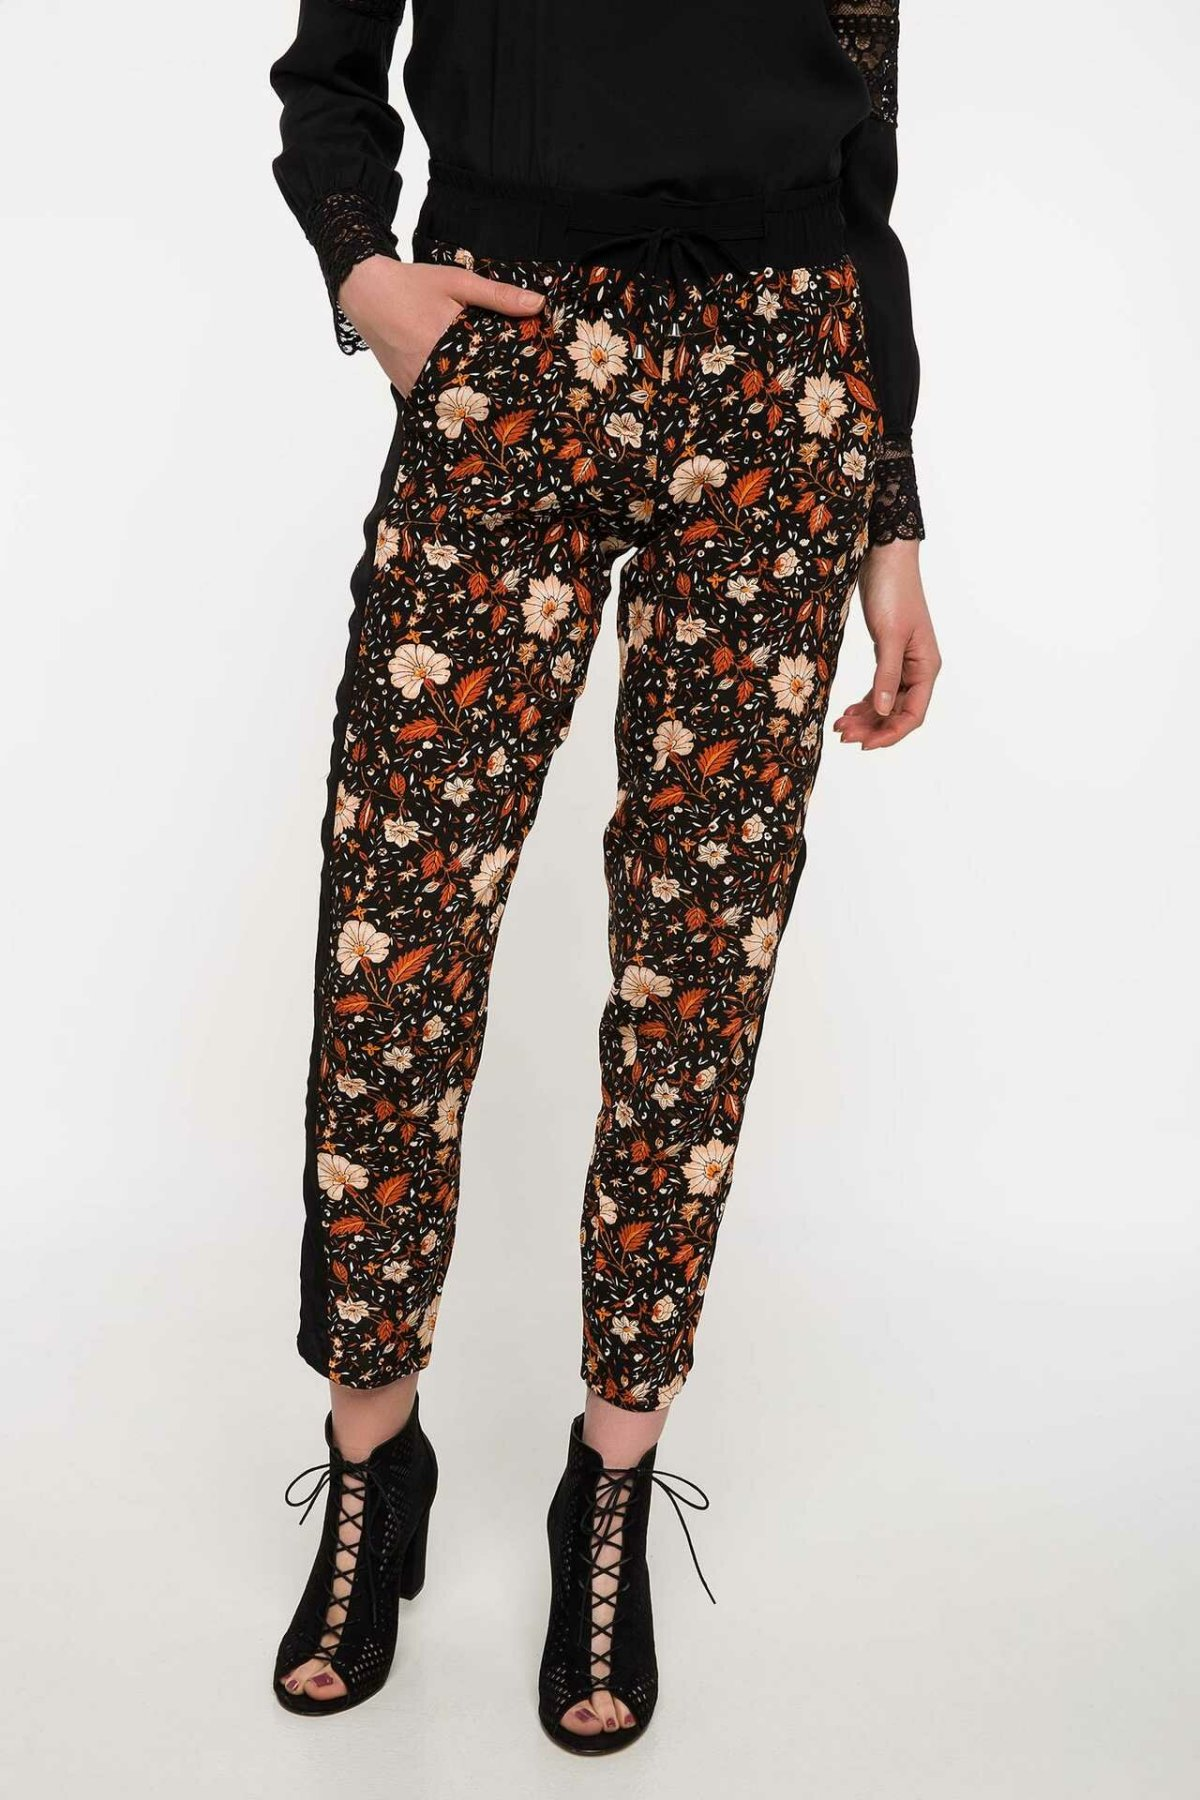 DeFacto Women Fashion Floral Harem Pants Prints Long Pants Female Ankle-length Bottoms Casual Loose Trousers-I9939AZ18SP